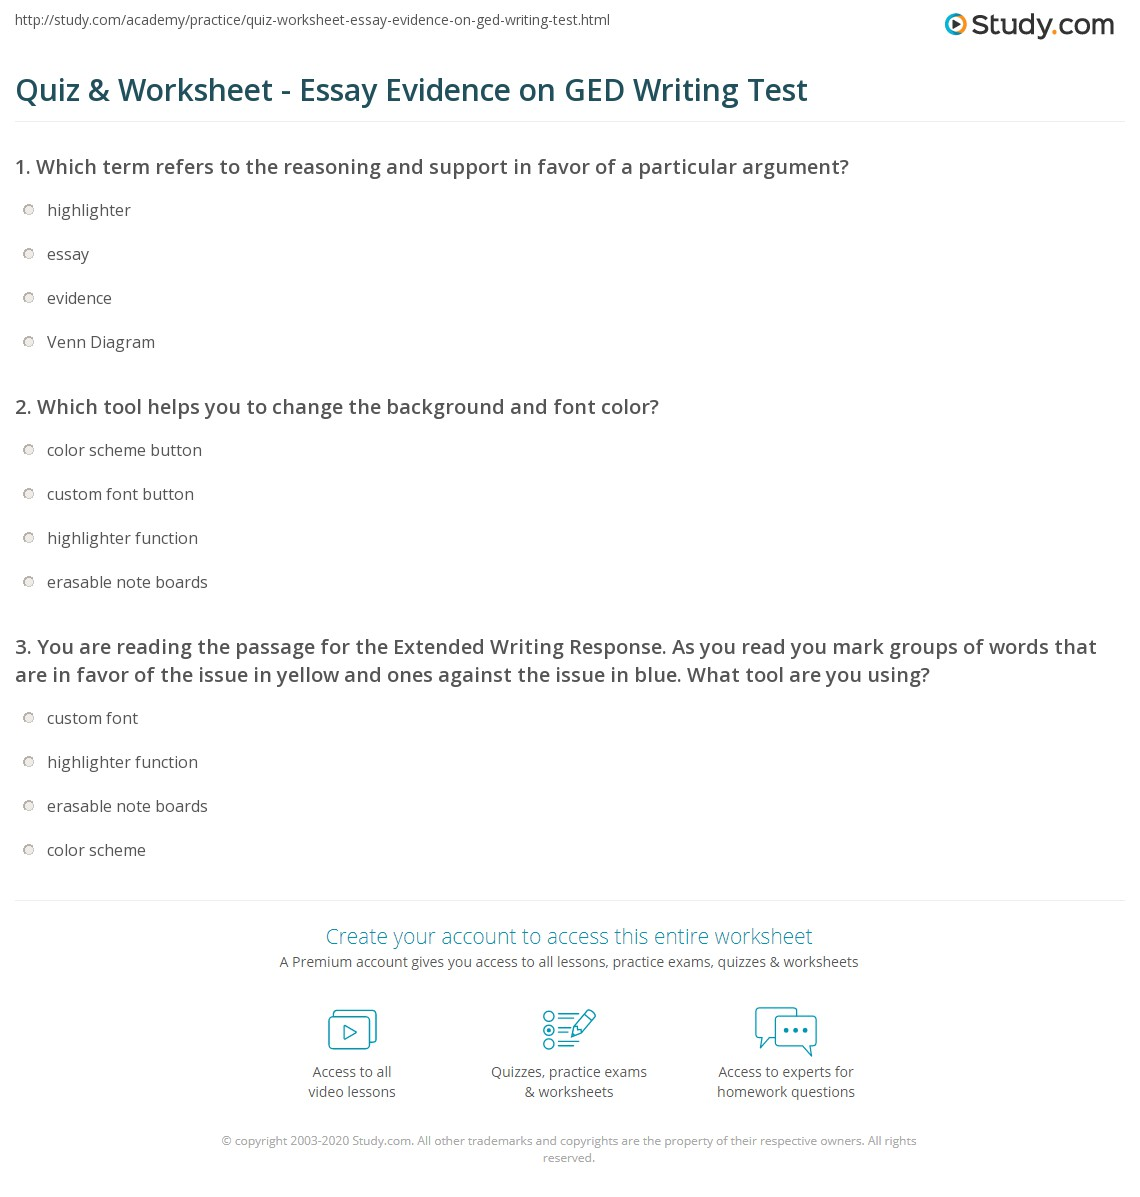 Quiz & Worksheet - Essay Evidence on GED Writing Test | Study.com